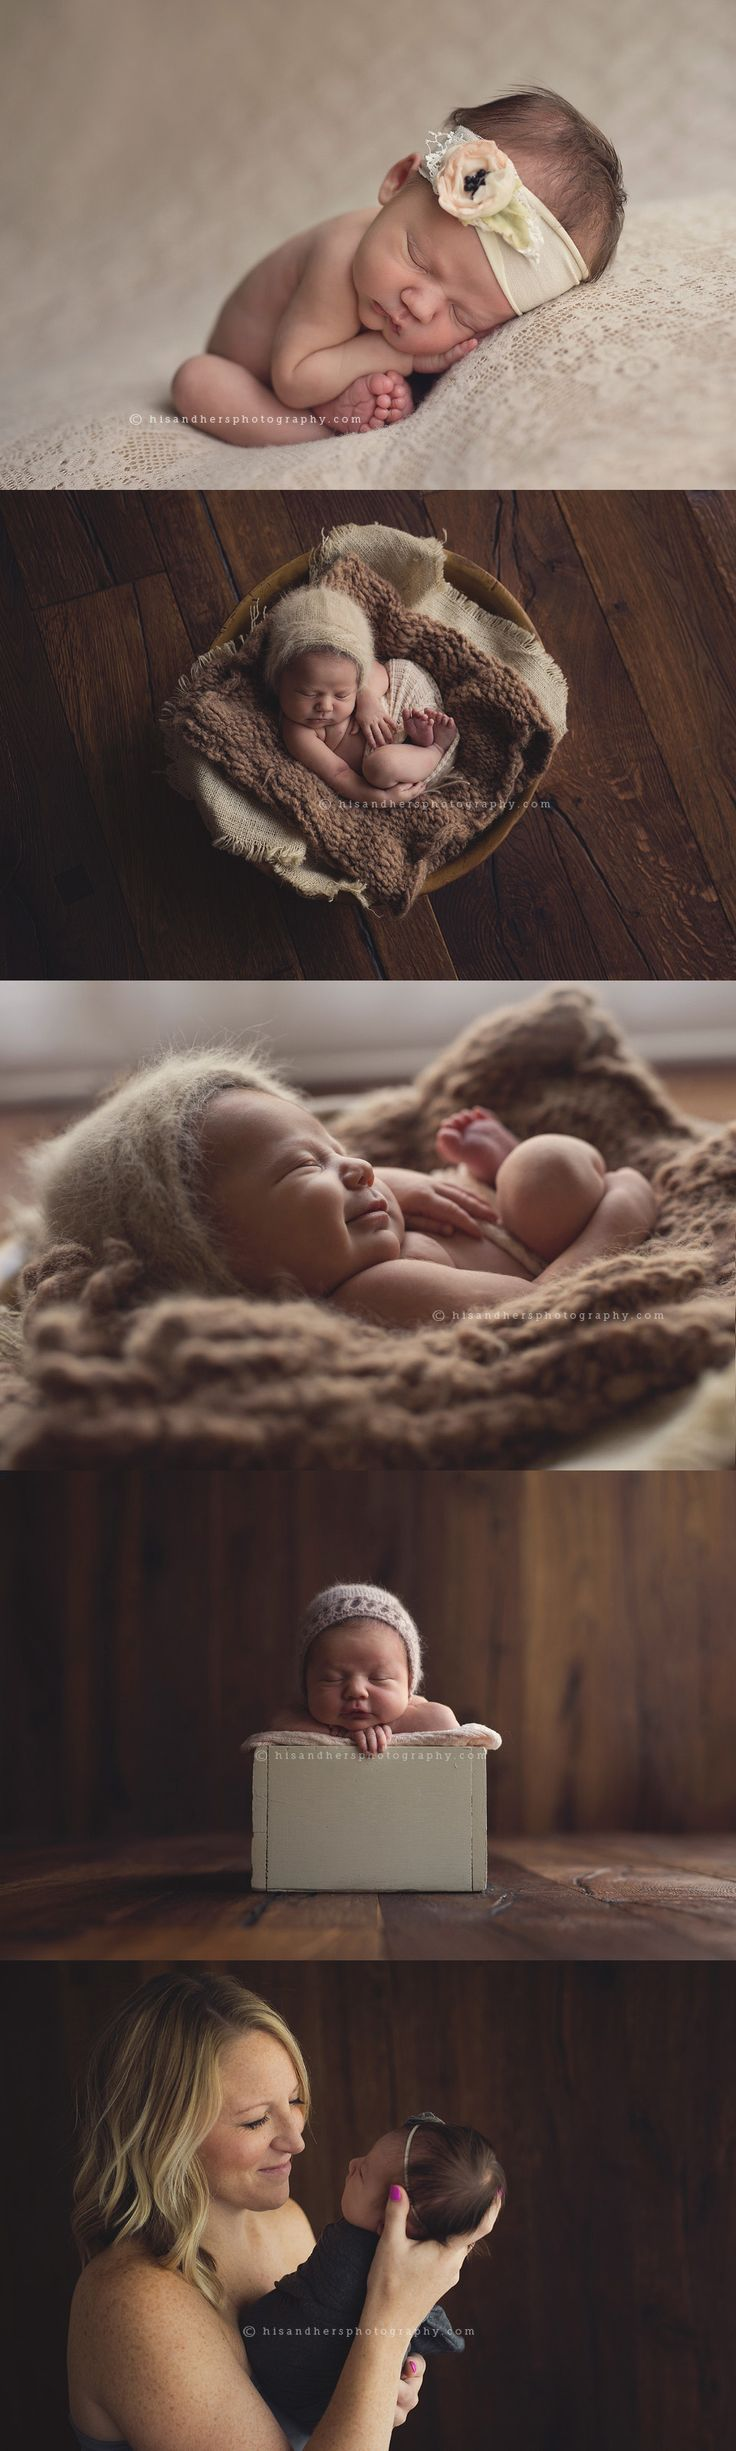 5-day-old Ruby Kate   Des Moines, Iowa newborn photographer, Darcy Milder   His & Hers